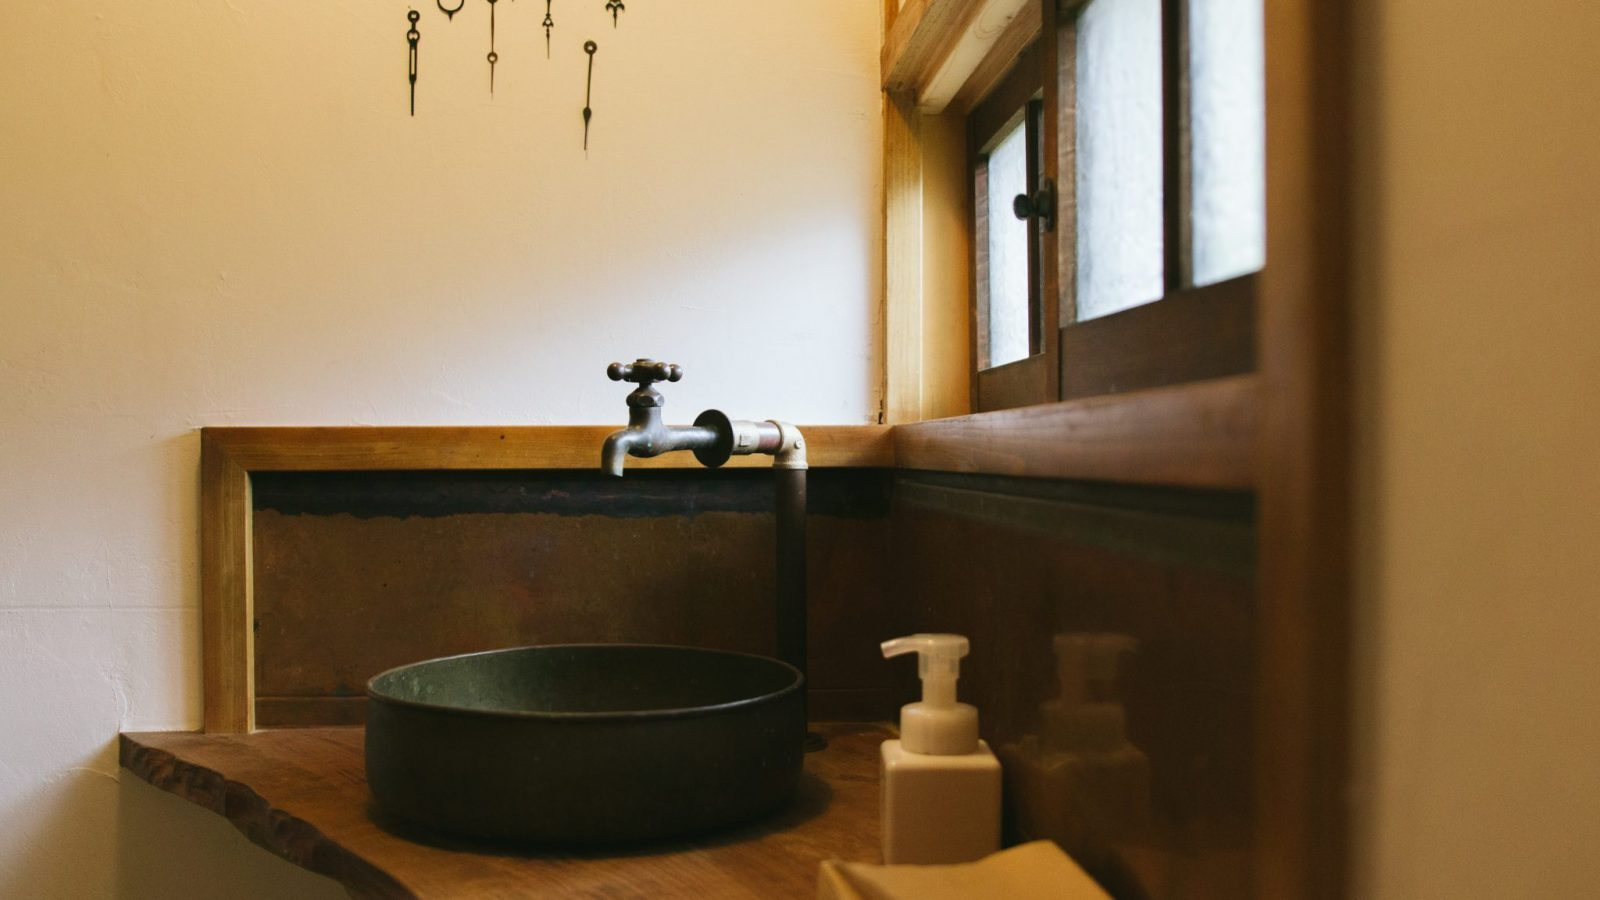 The Cafe sink at retreat wabi-sabi